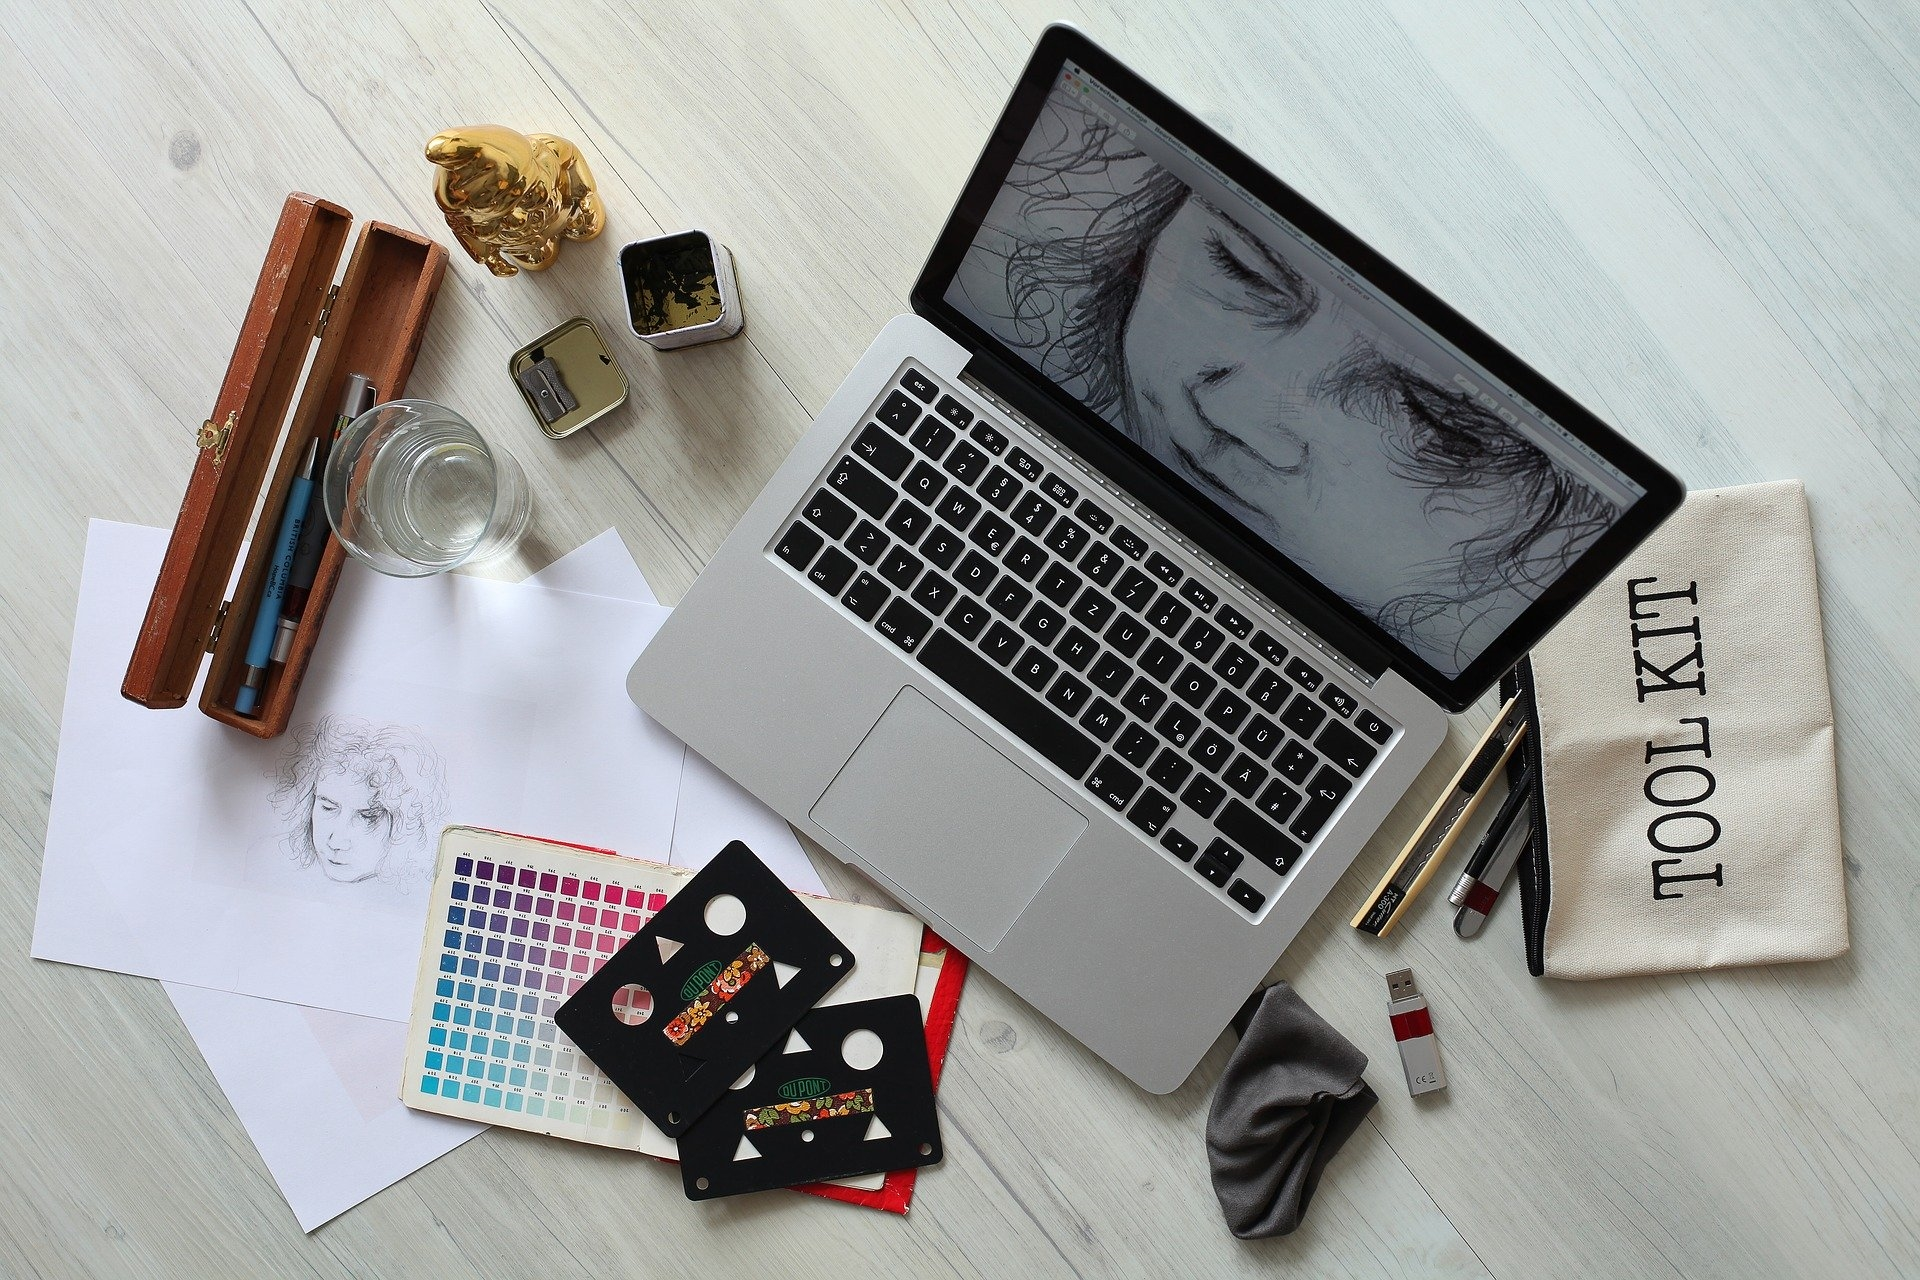 How to Find and Hire the Best Graphic Designer